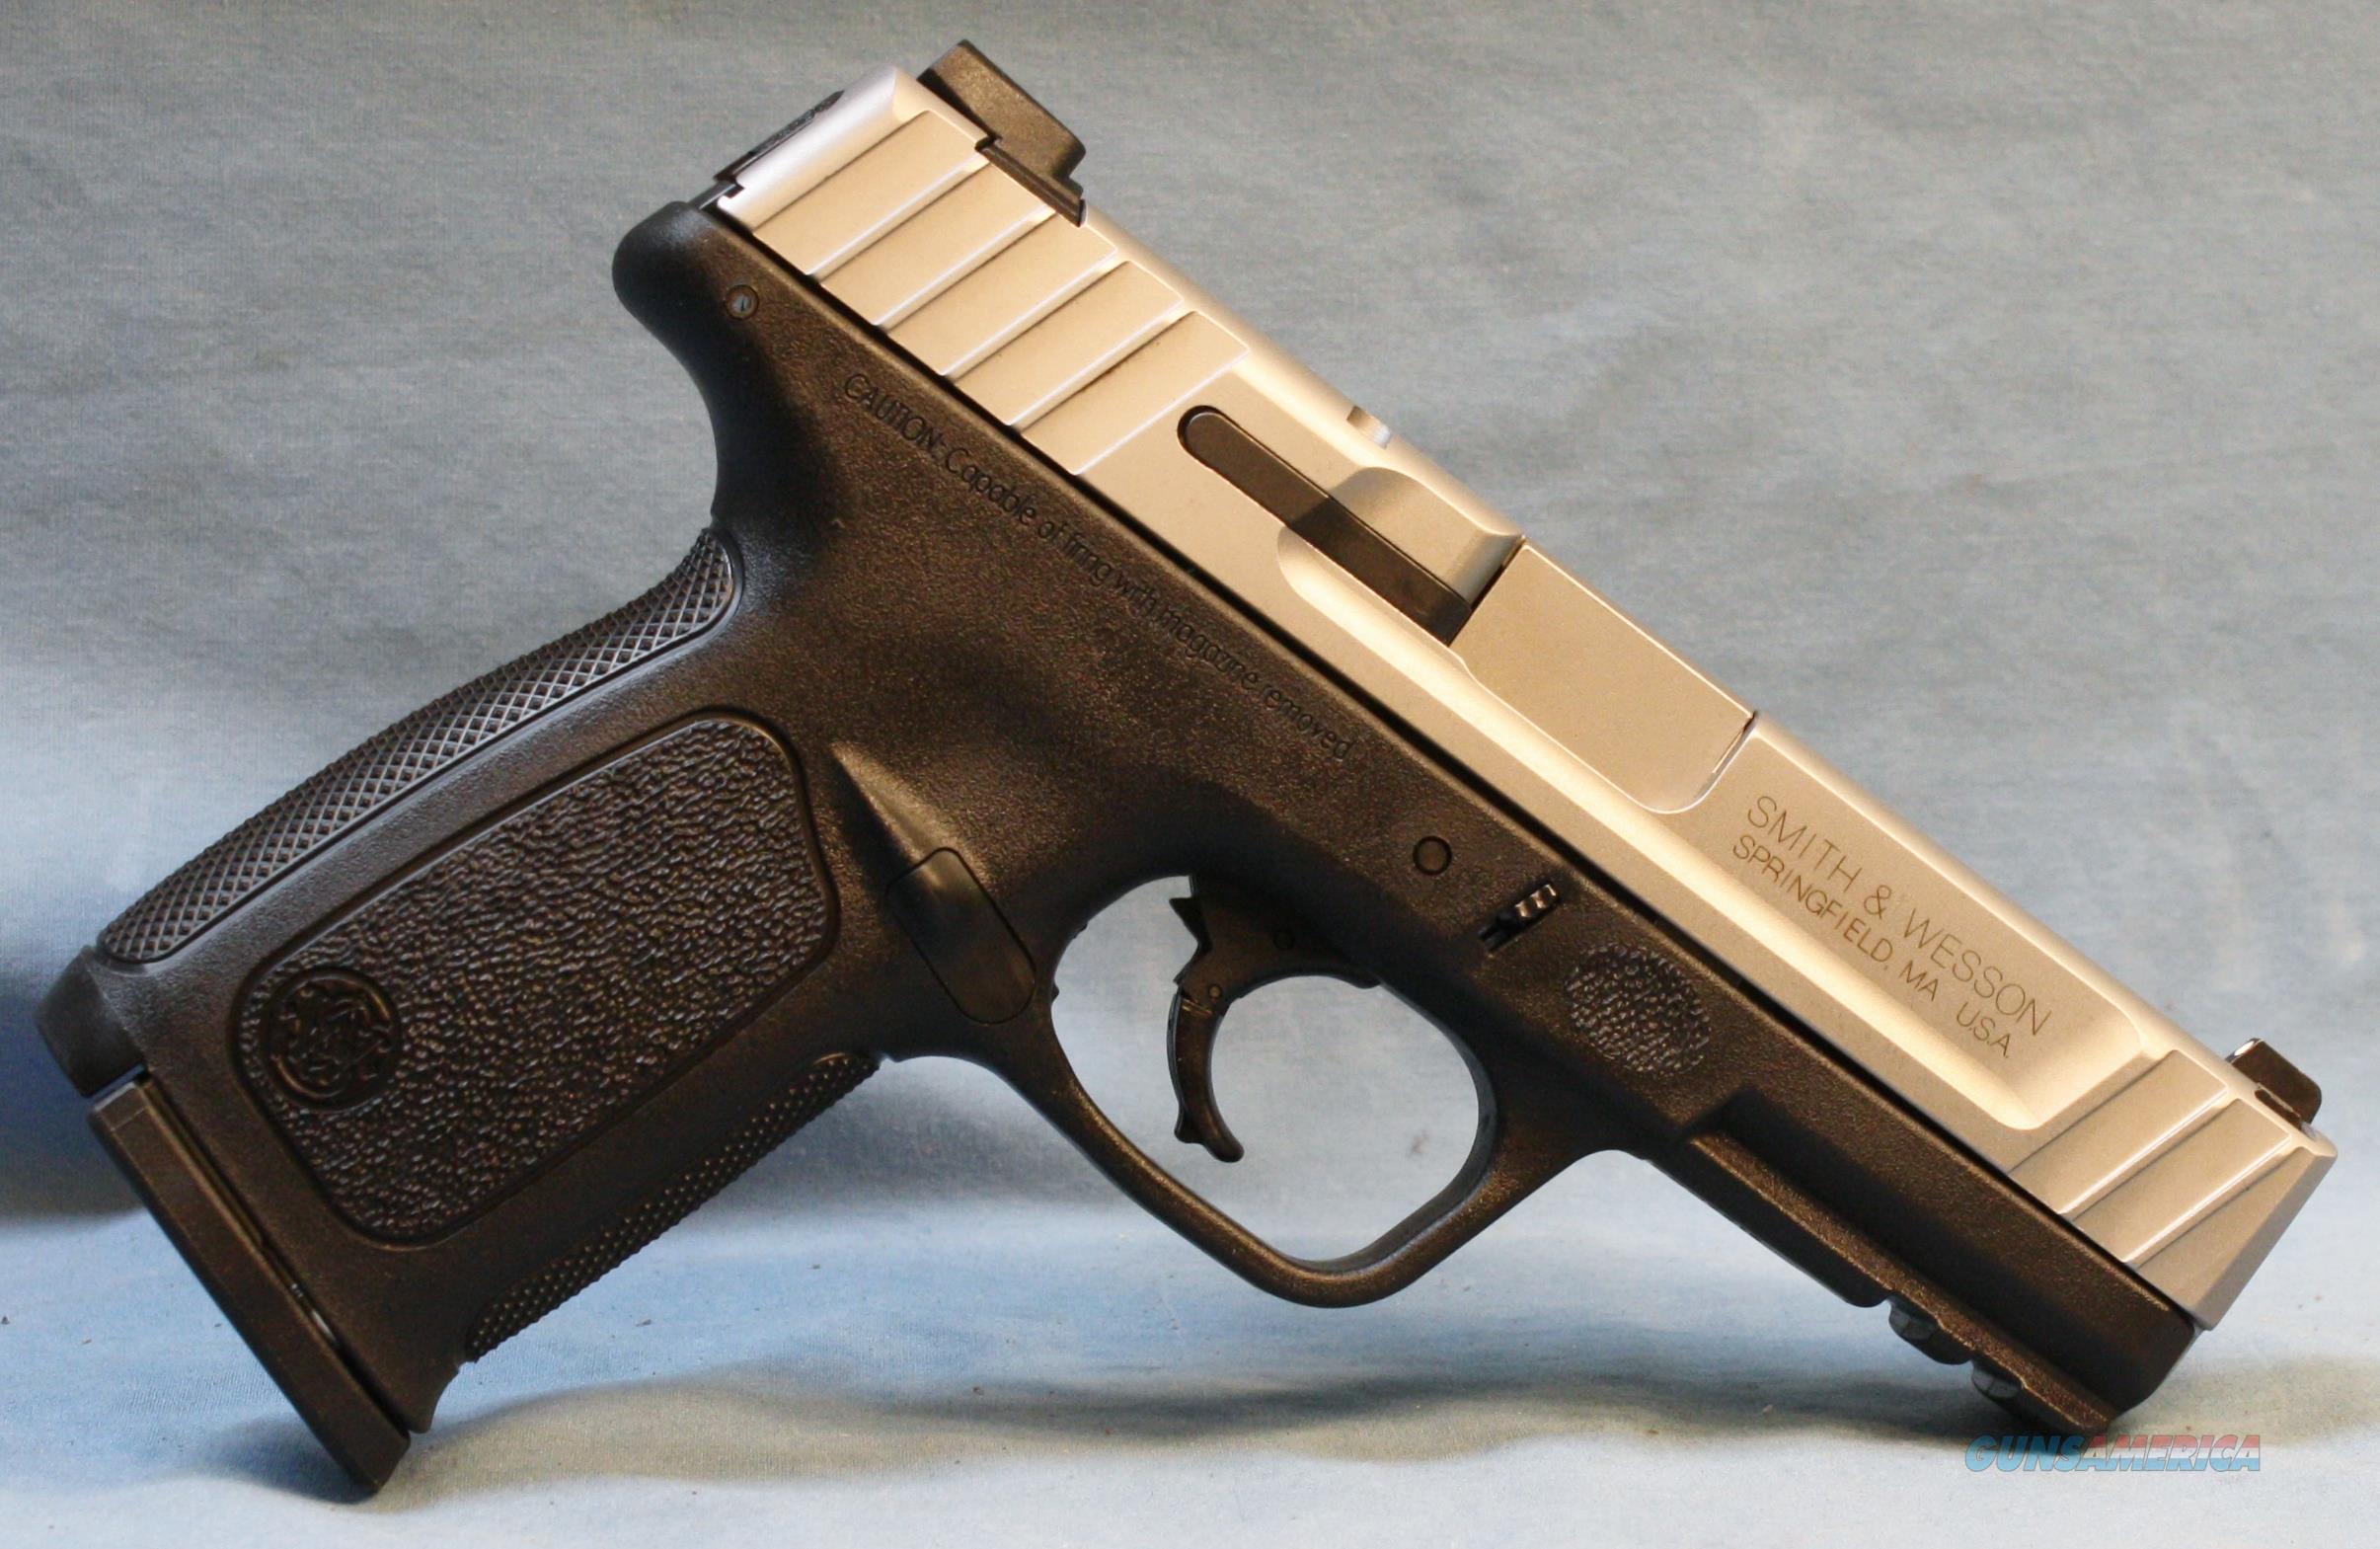 Smith & Wesson SD9VE Double Action Semi-Automatic Pistol, 9mm Luger   Guns > Pistols > Smith & Wesson Pistols - Autos > Polymer Frame